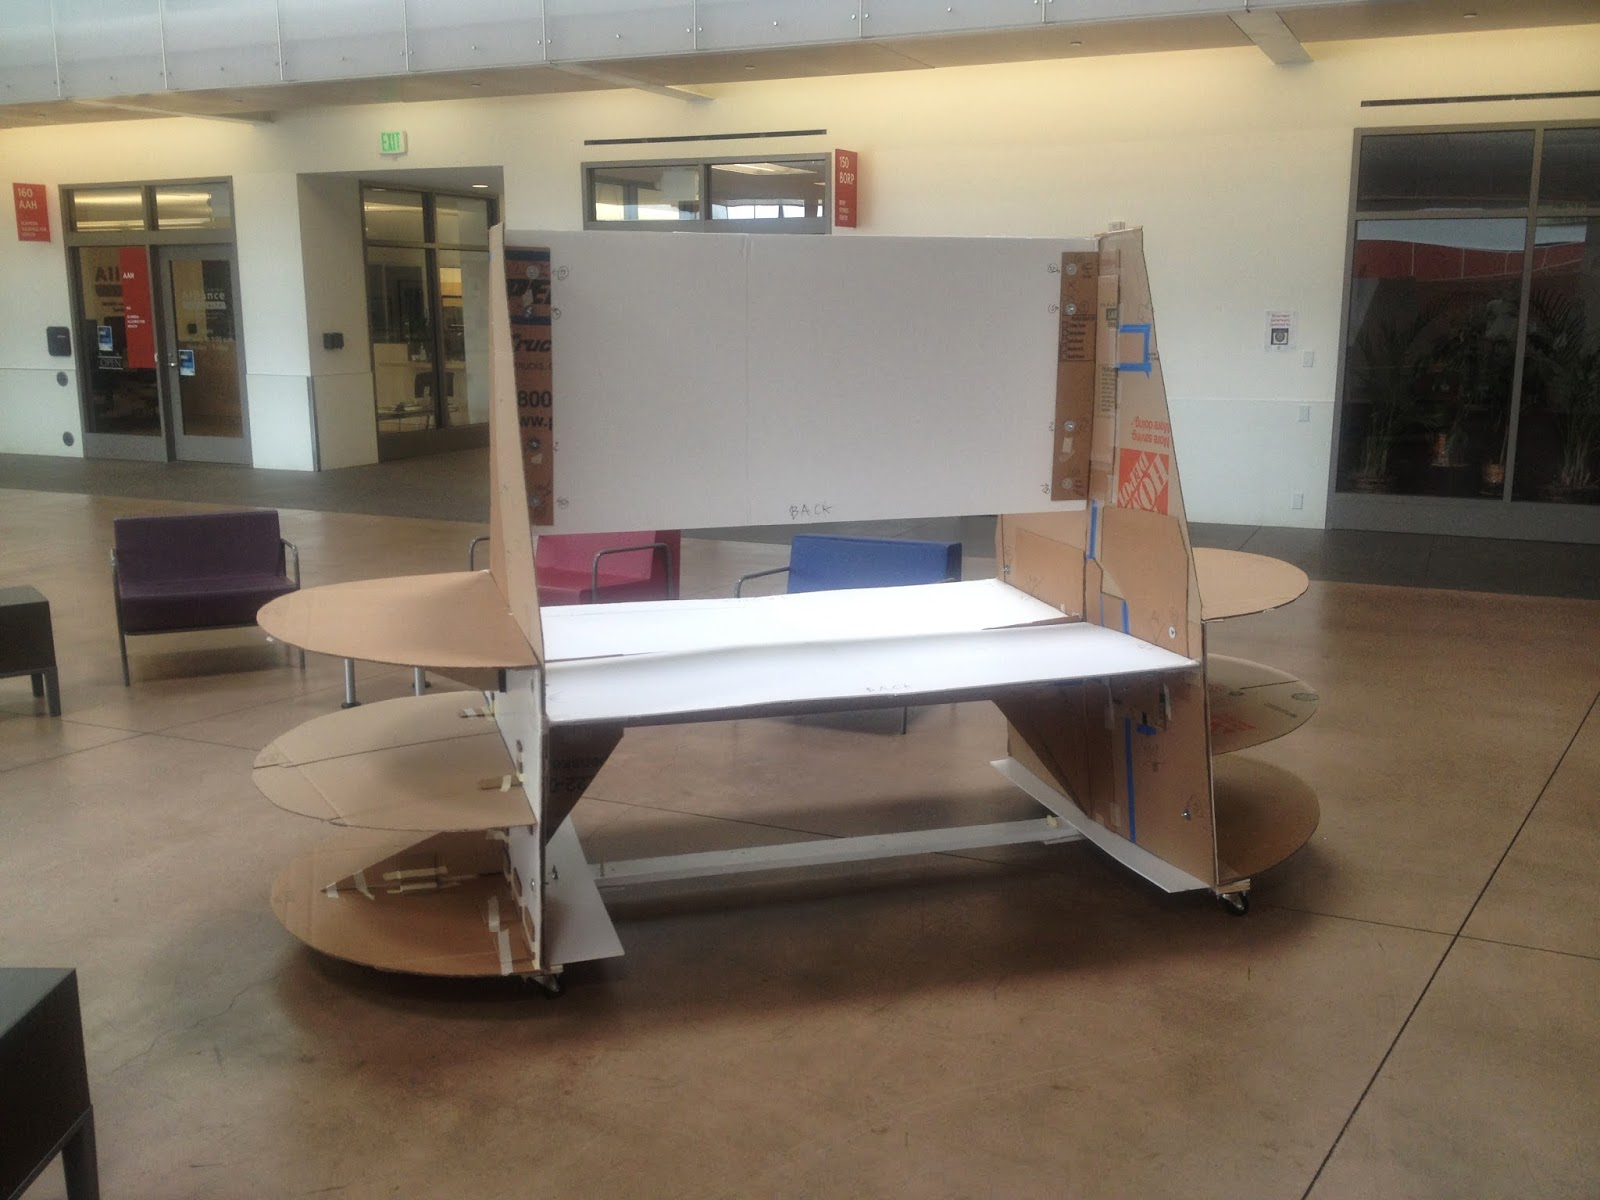 The cardboard model is completely assembled with the dolly attached underneath. It is standing within the Ed Roberts Building within the lounge area.